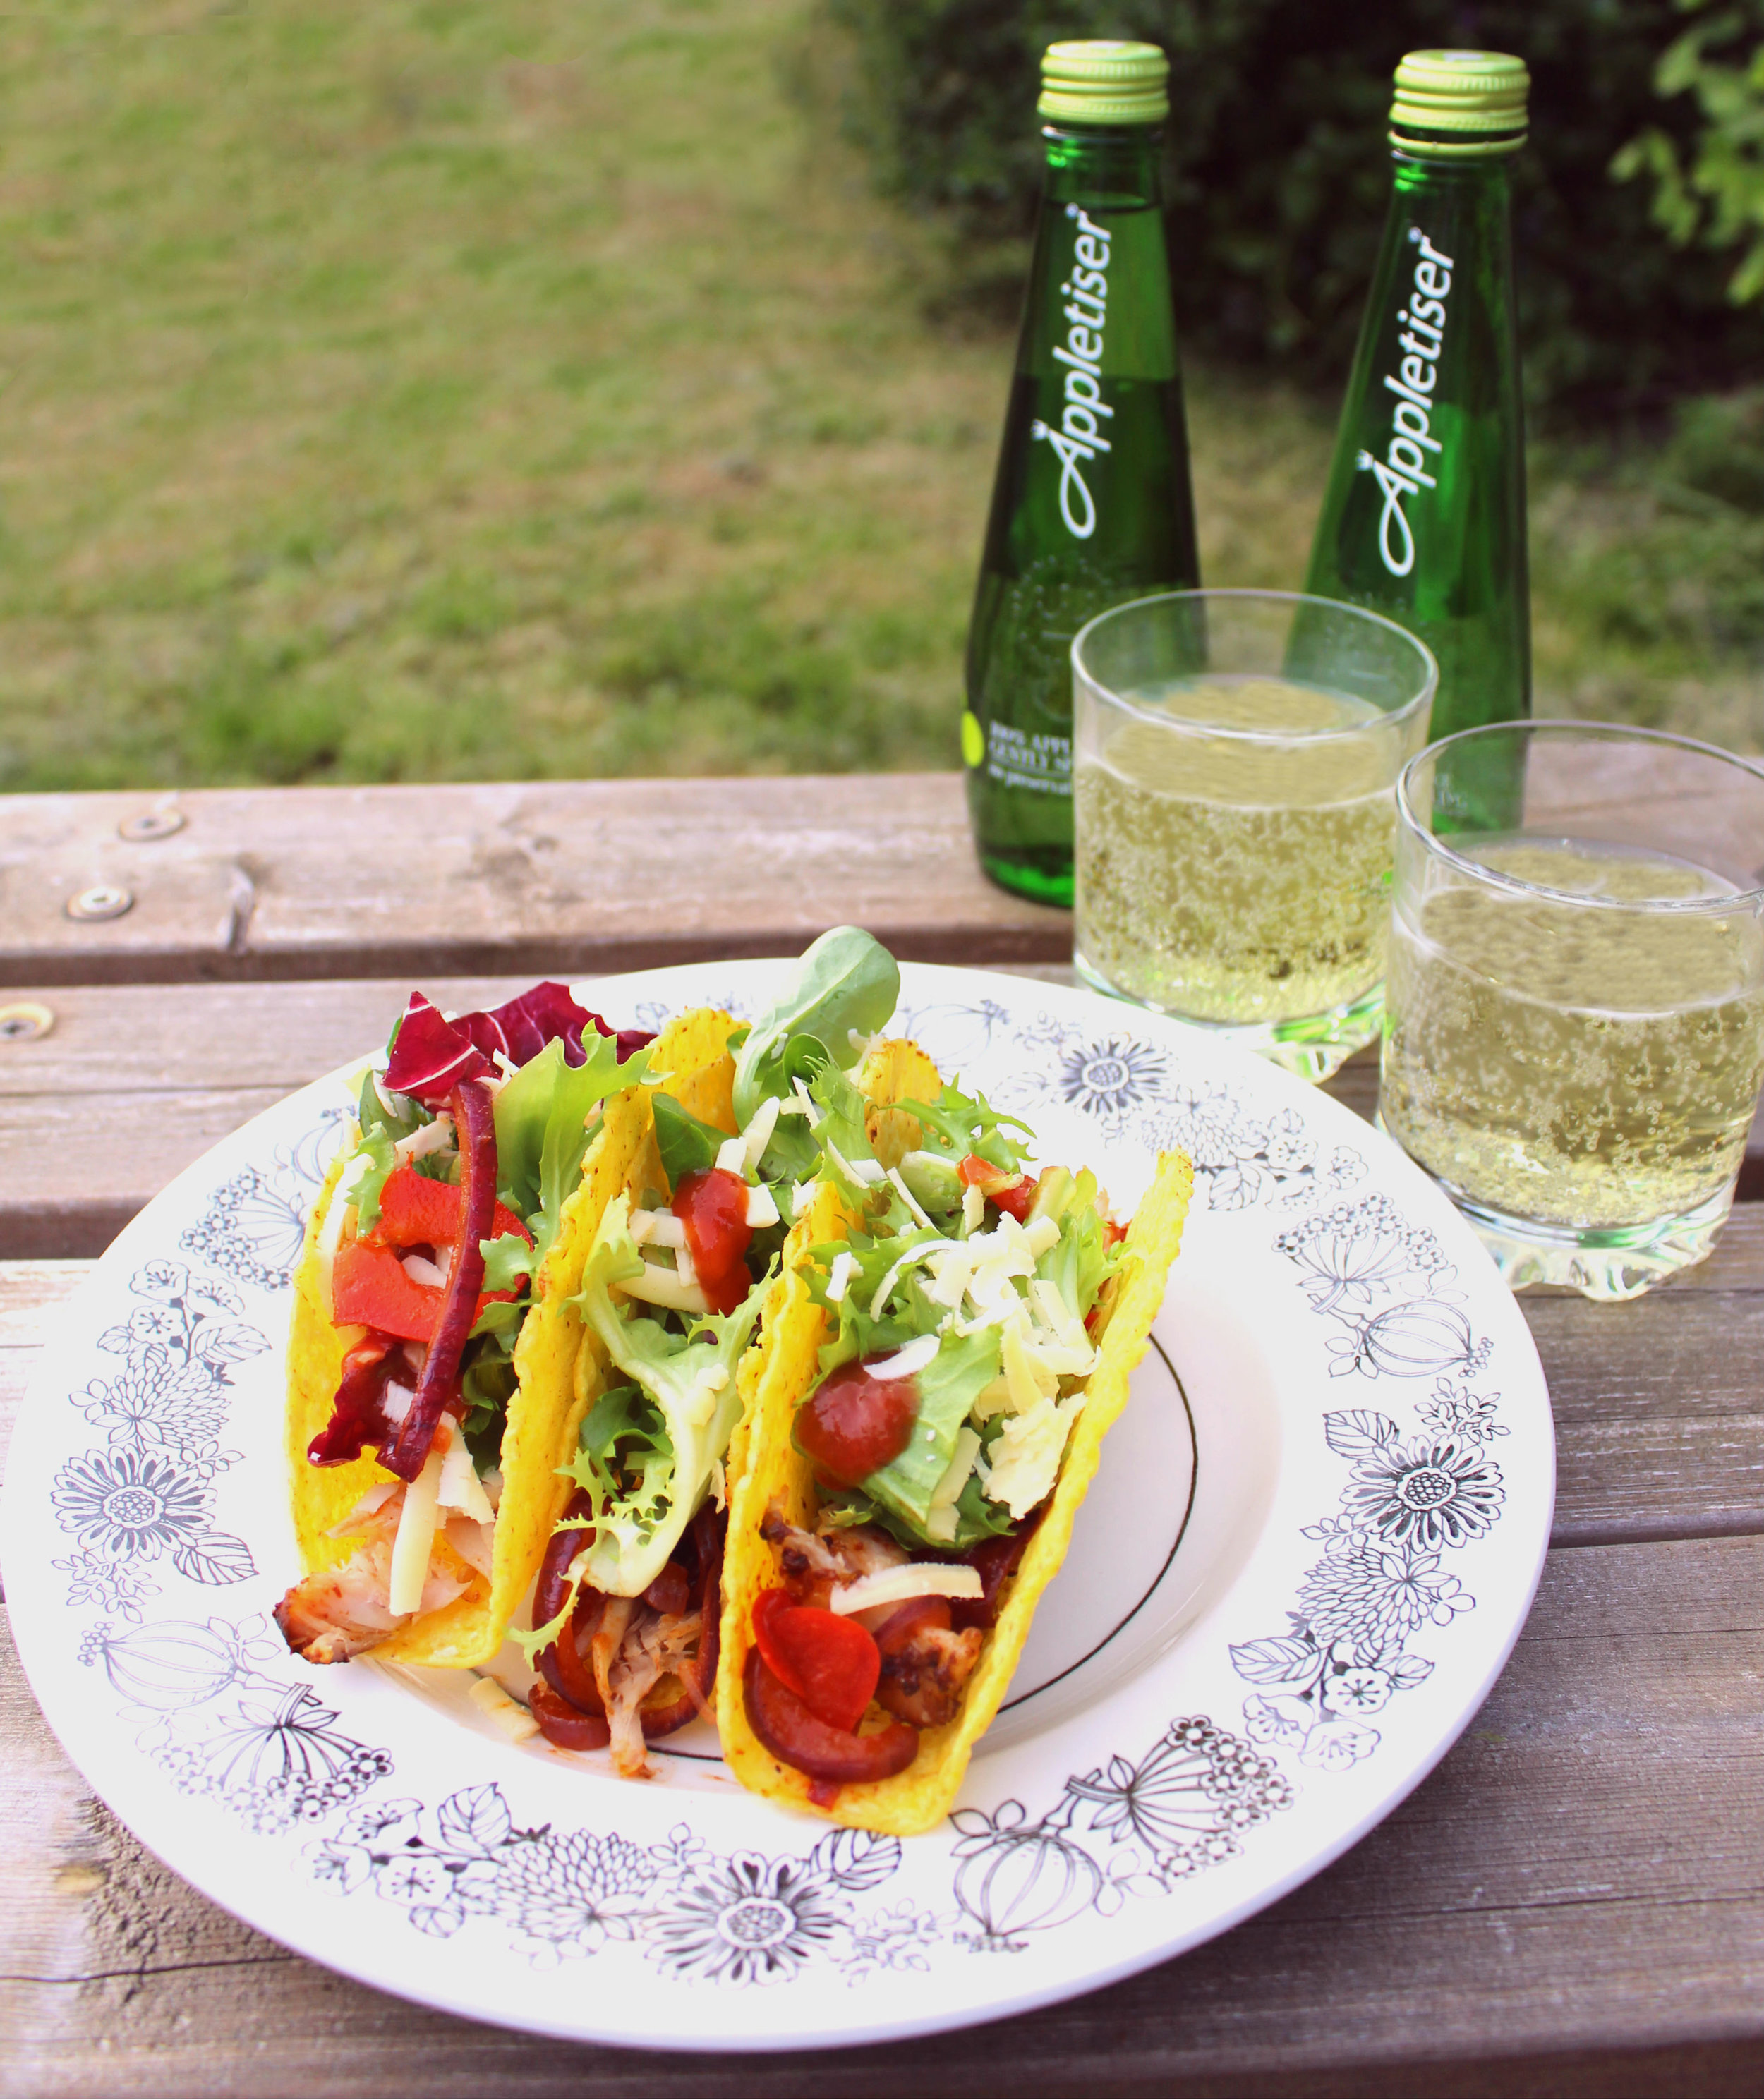 Grilled Barbecue Chicken Pineapple Tacos recipe